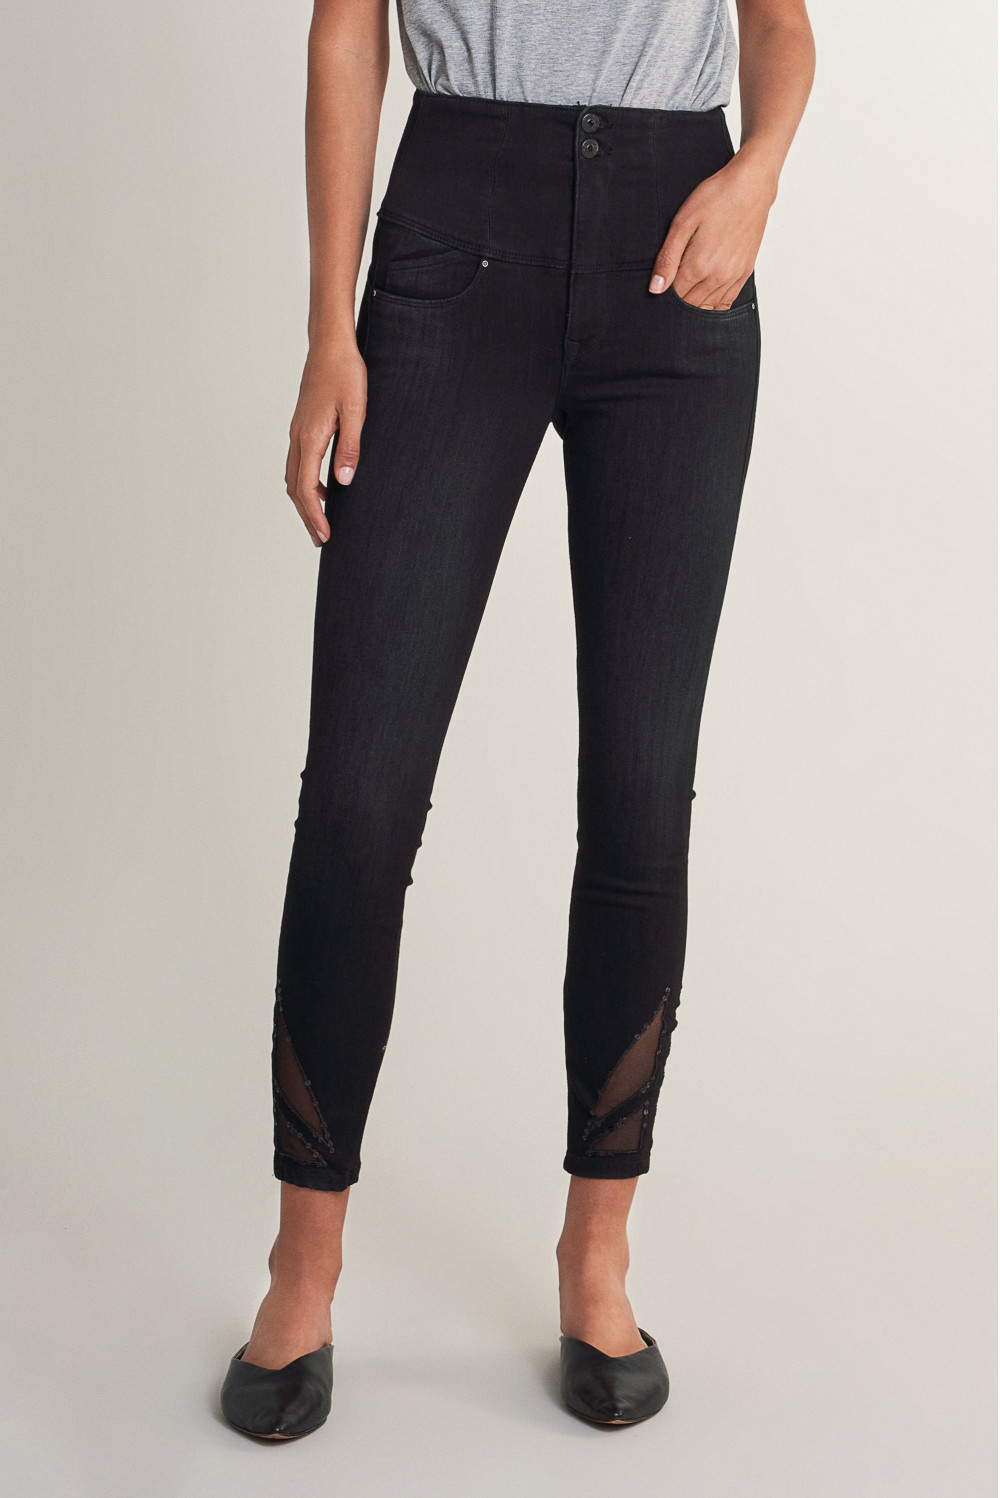 Diva capri jeans with detail on hem